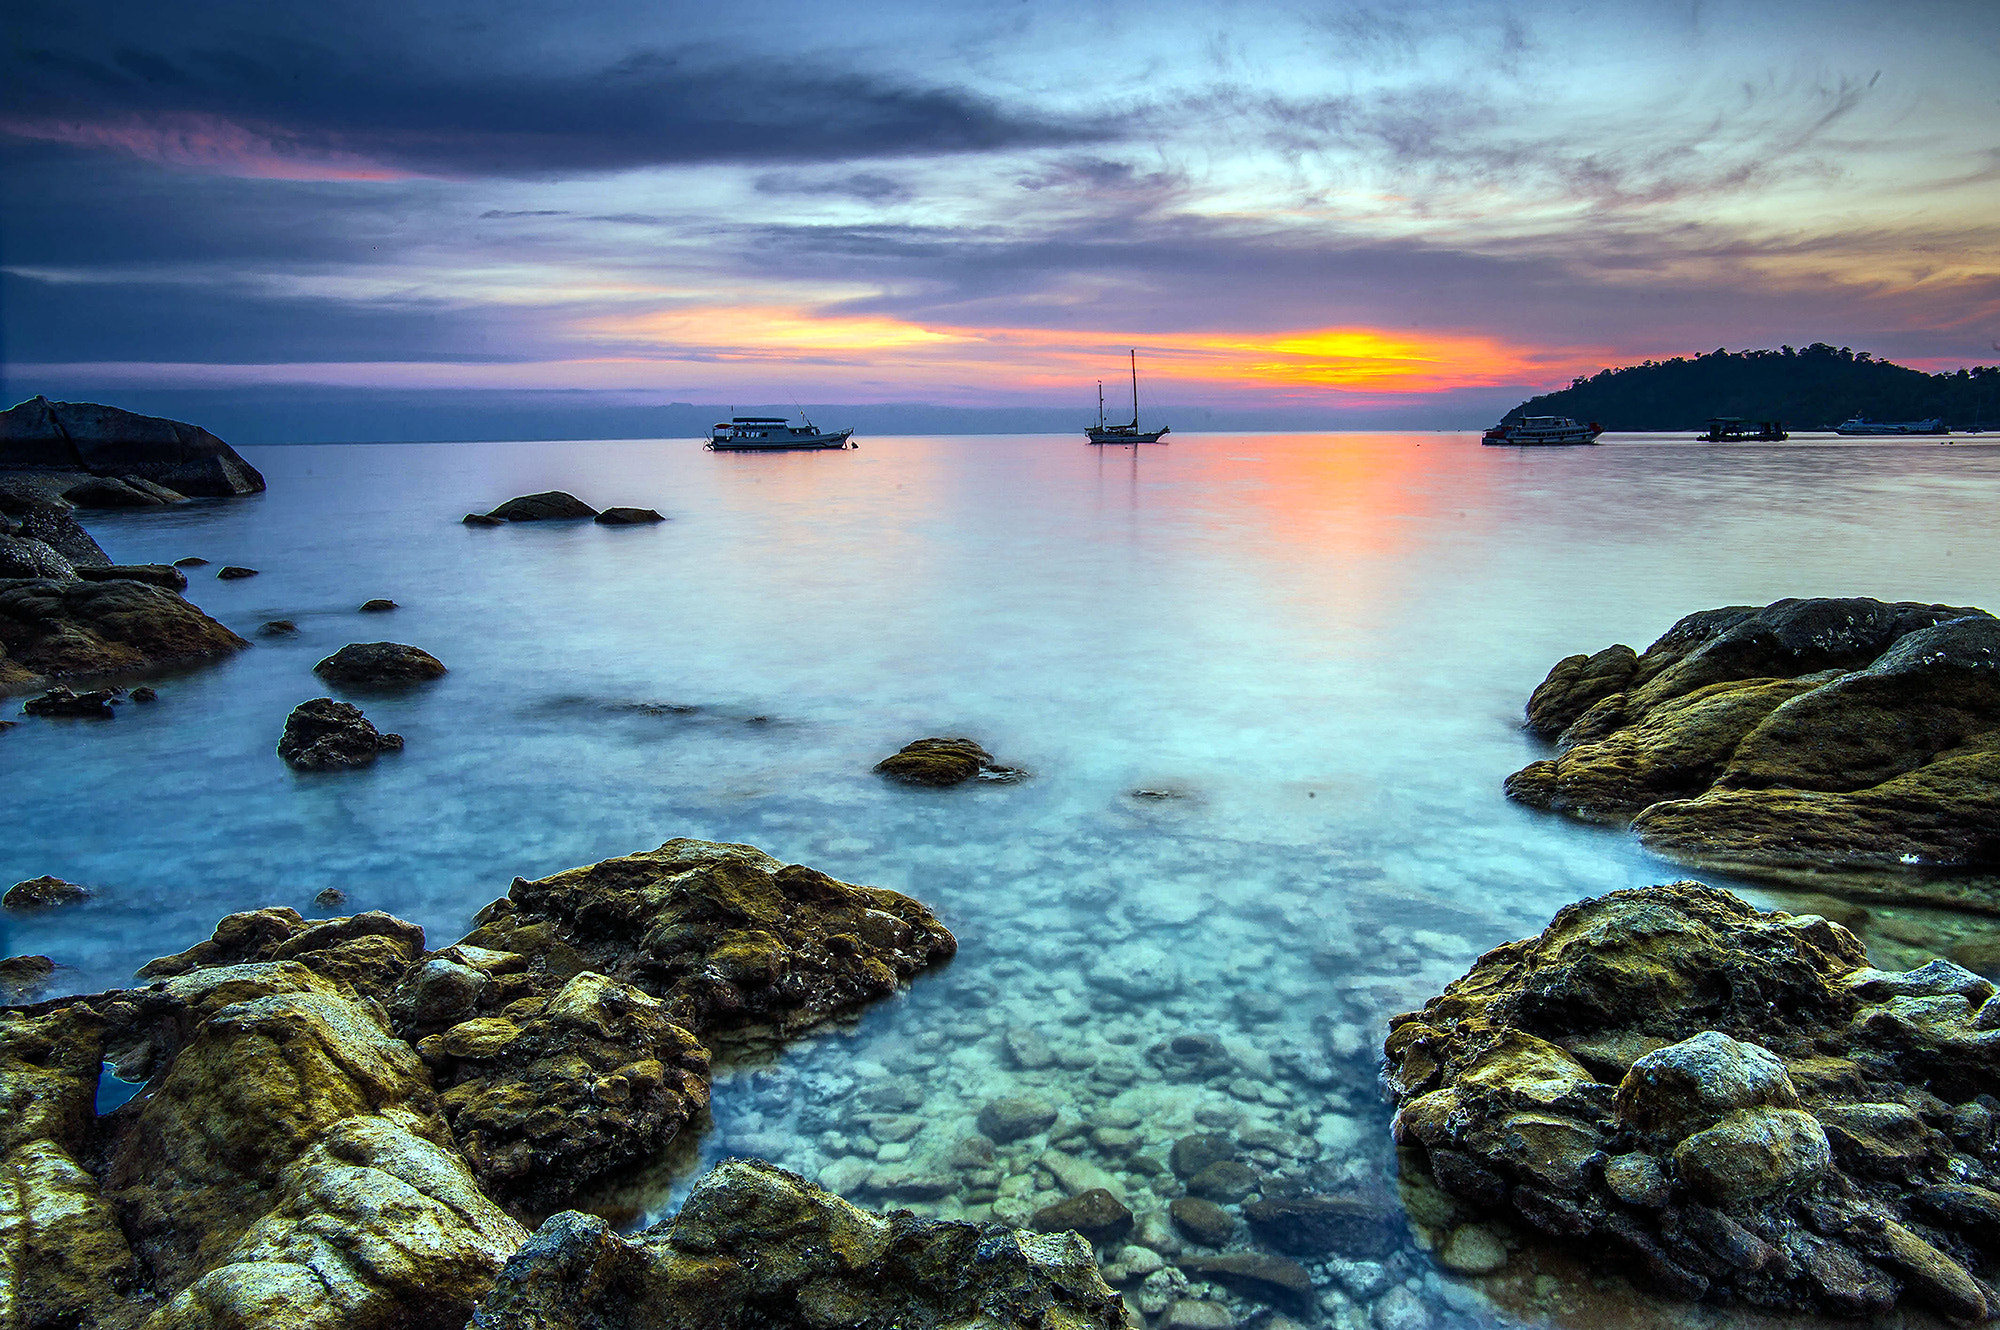 Photograph Sunset at Koh Lipe by Puchong Pannoi on 500px